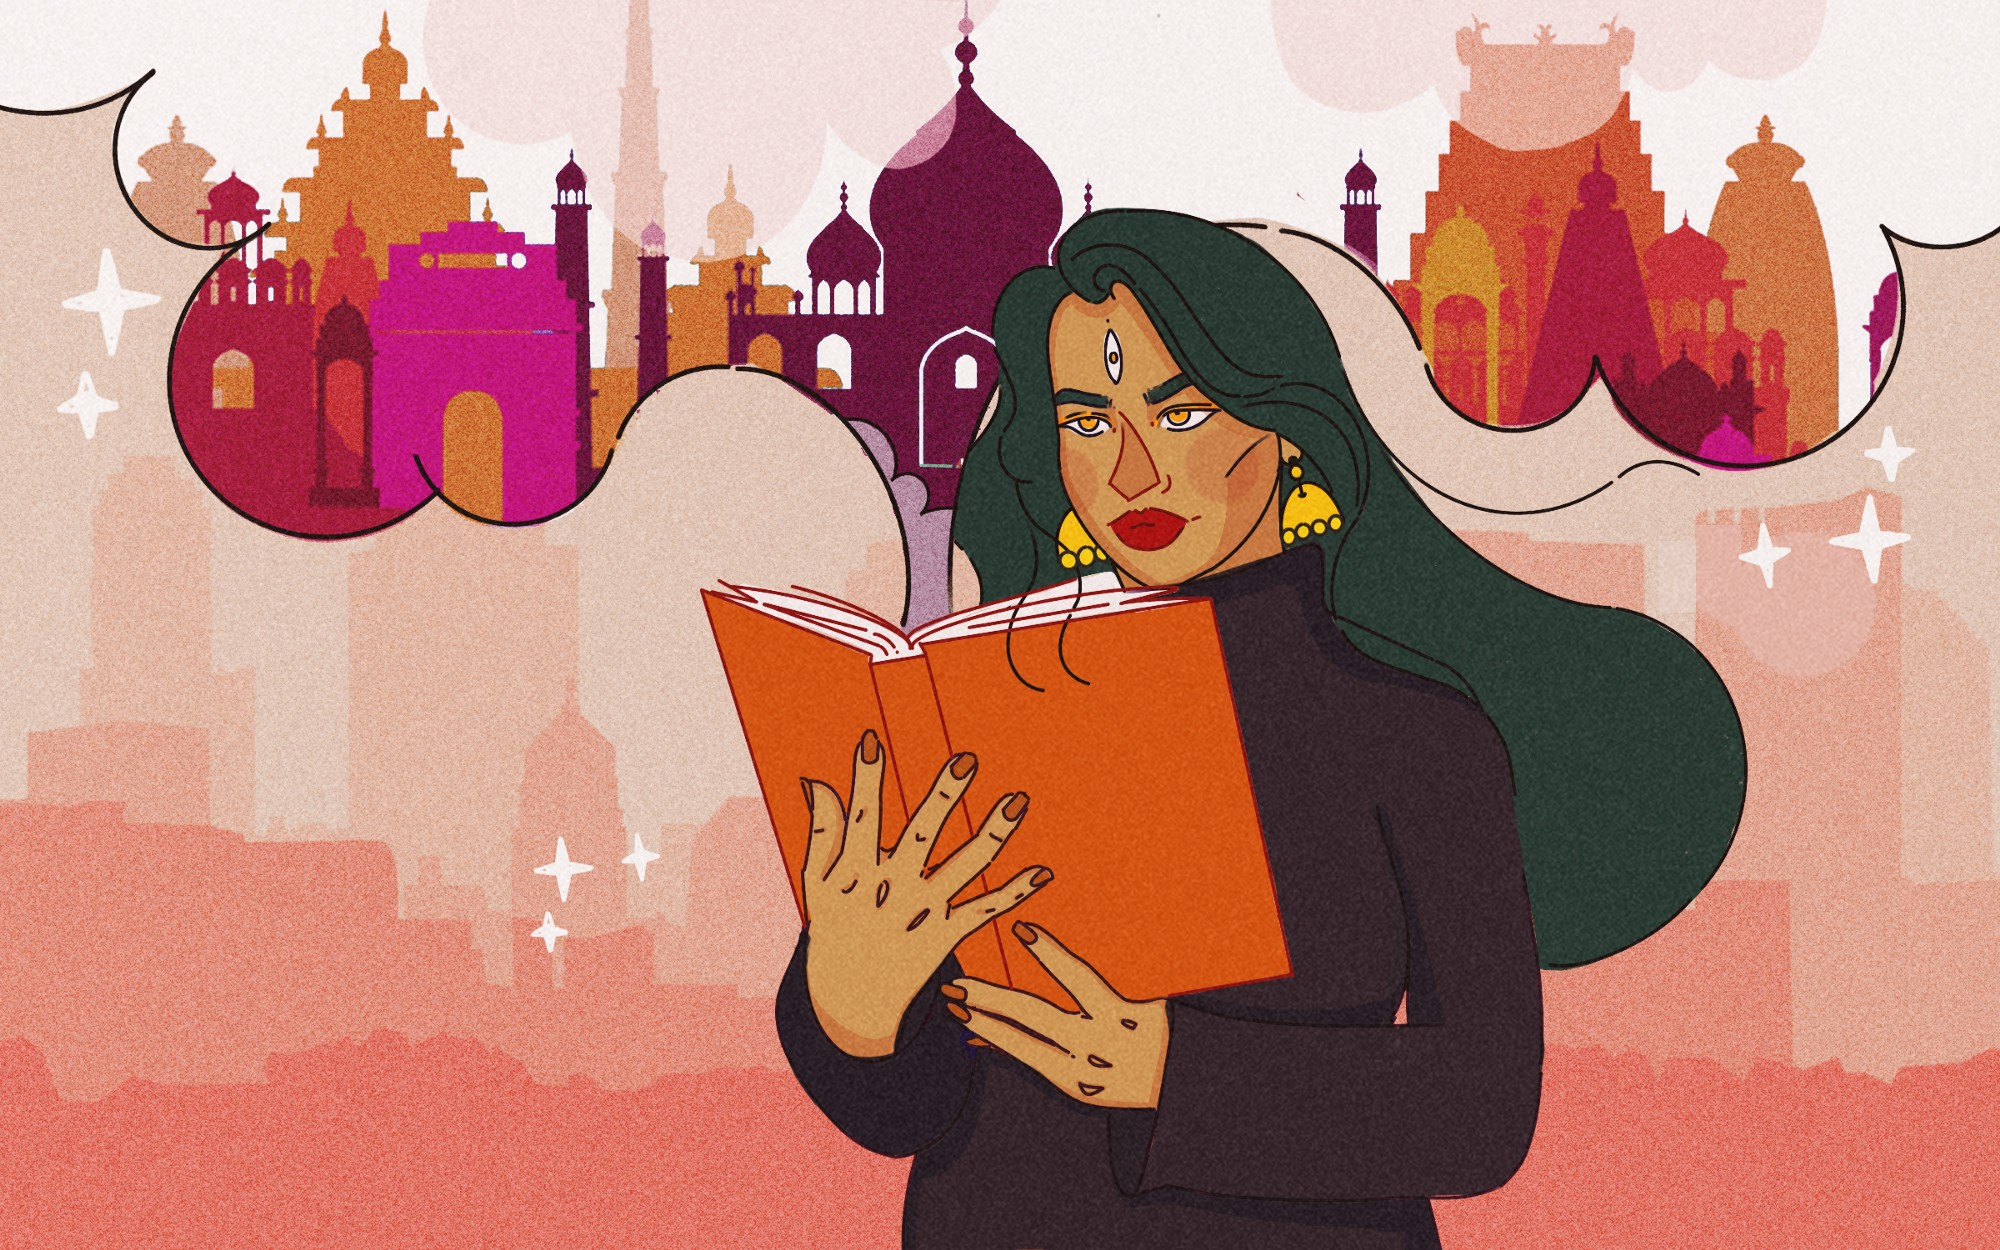 An illustration of a South Asian woman reading a book. A rich landscape of a South Asian city emerges from the book.